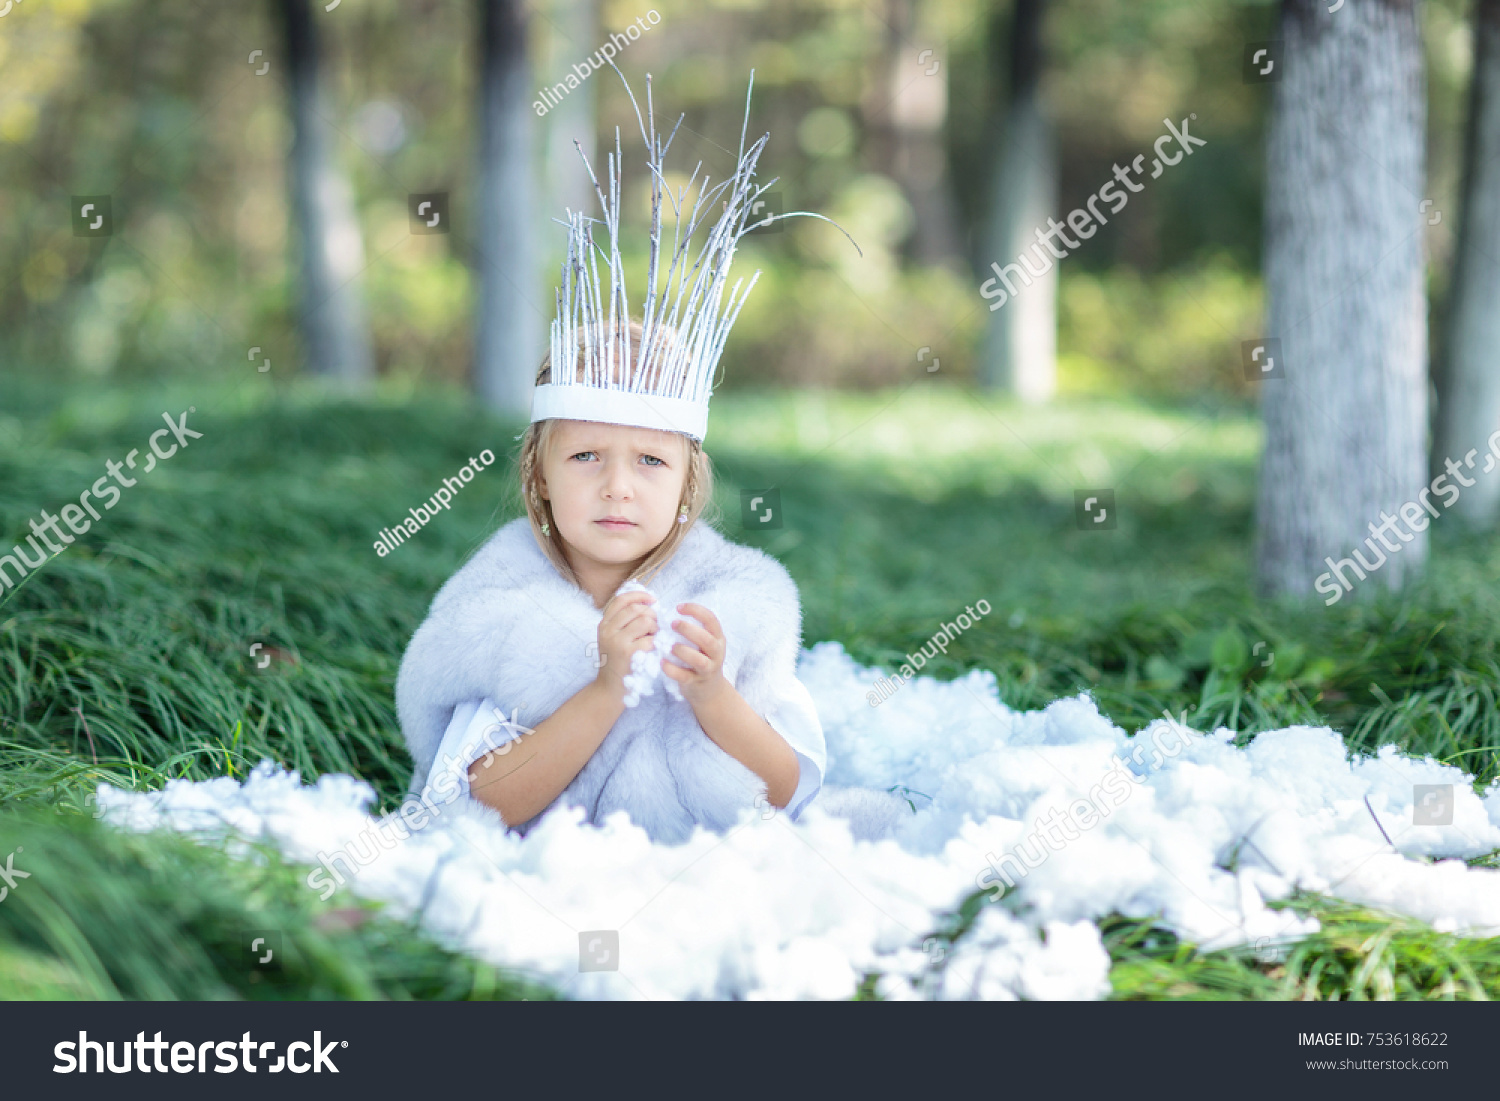 Portrait of a beautiful little girl in a snow queen costume with a crown on her